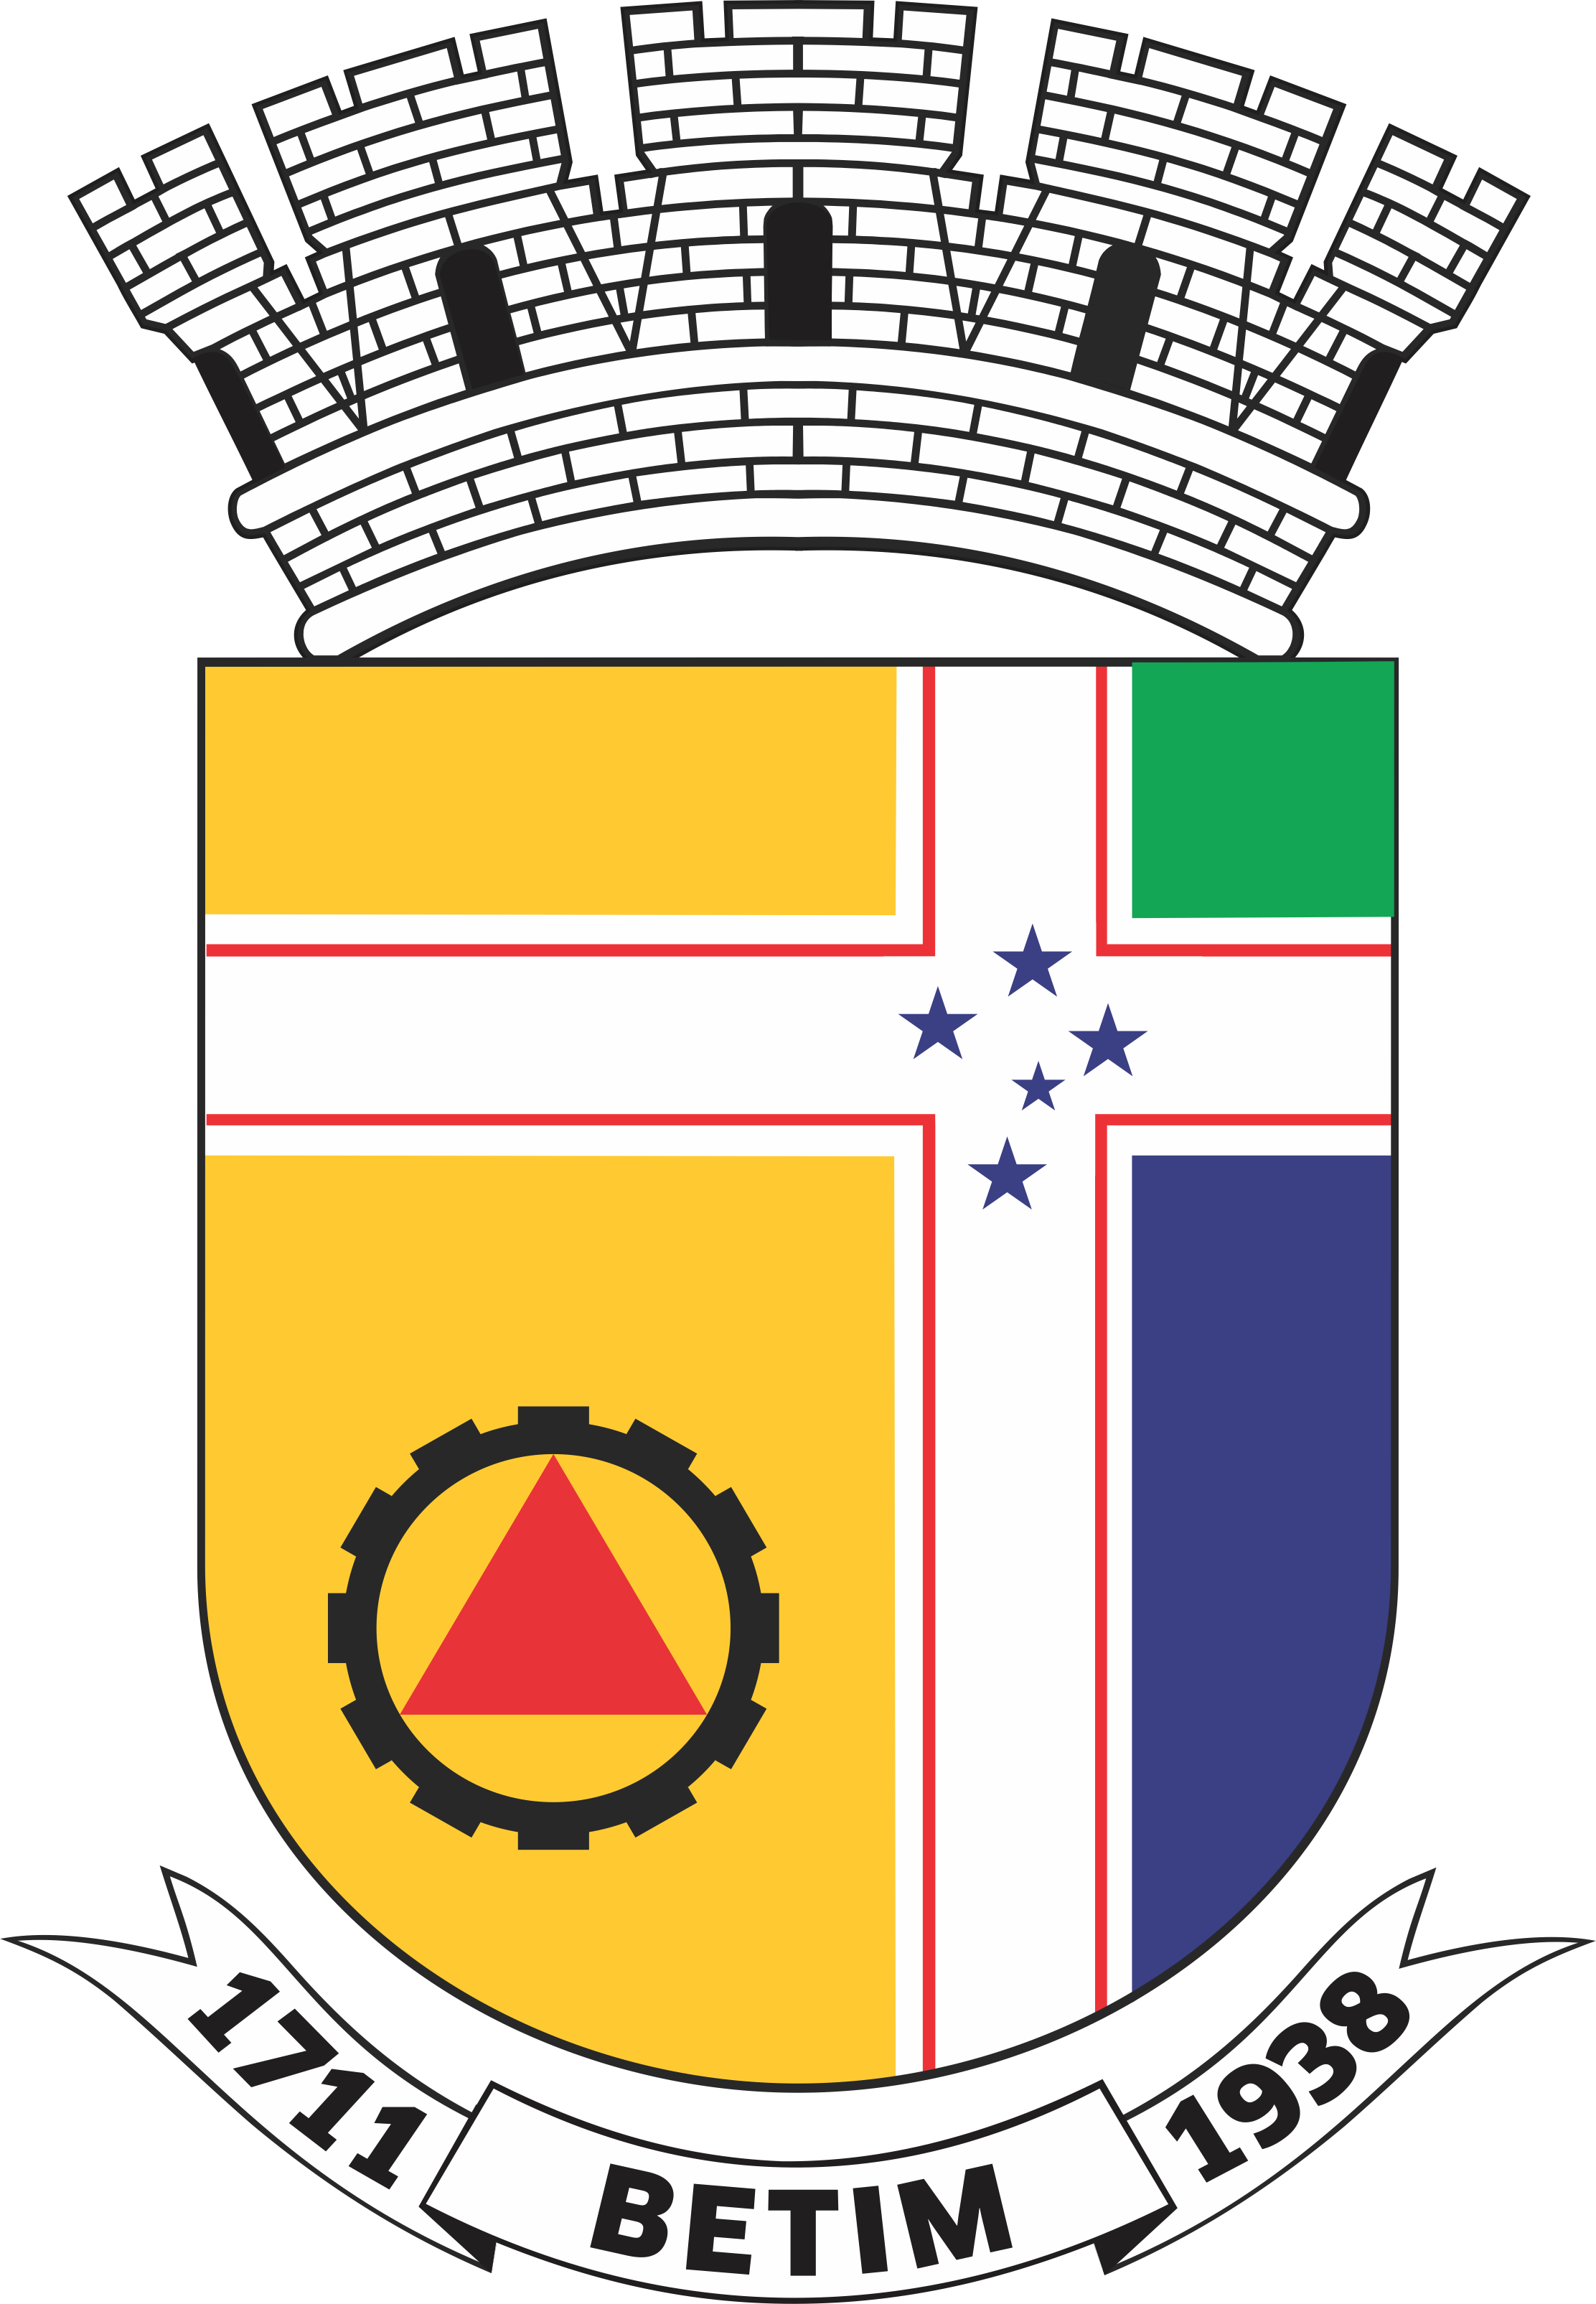 true http://static.iclei.org/ccr-images/govlogo-all/Municipality_of_Betim.png